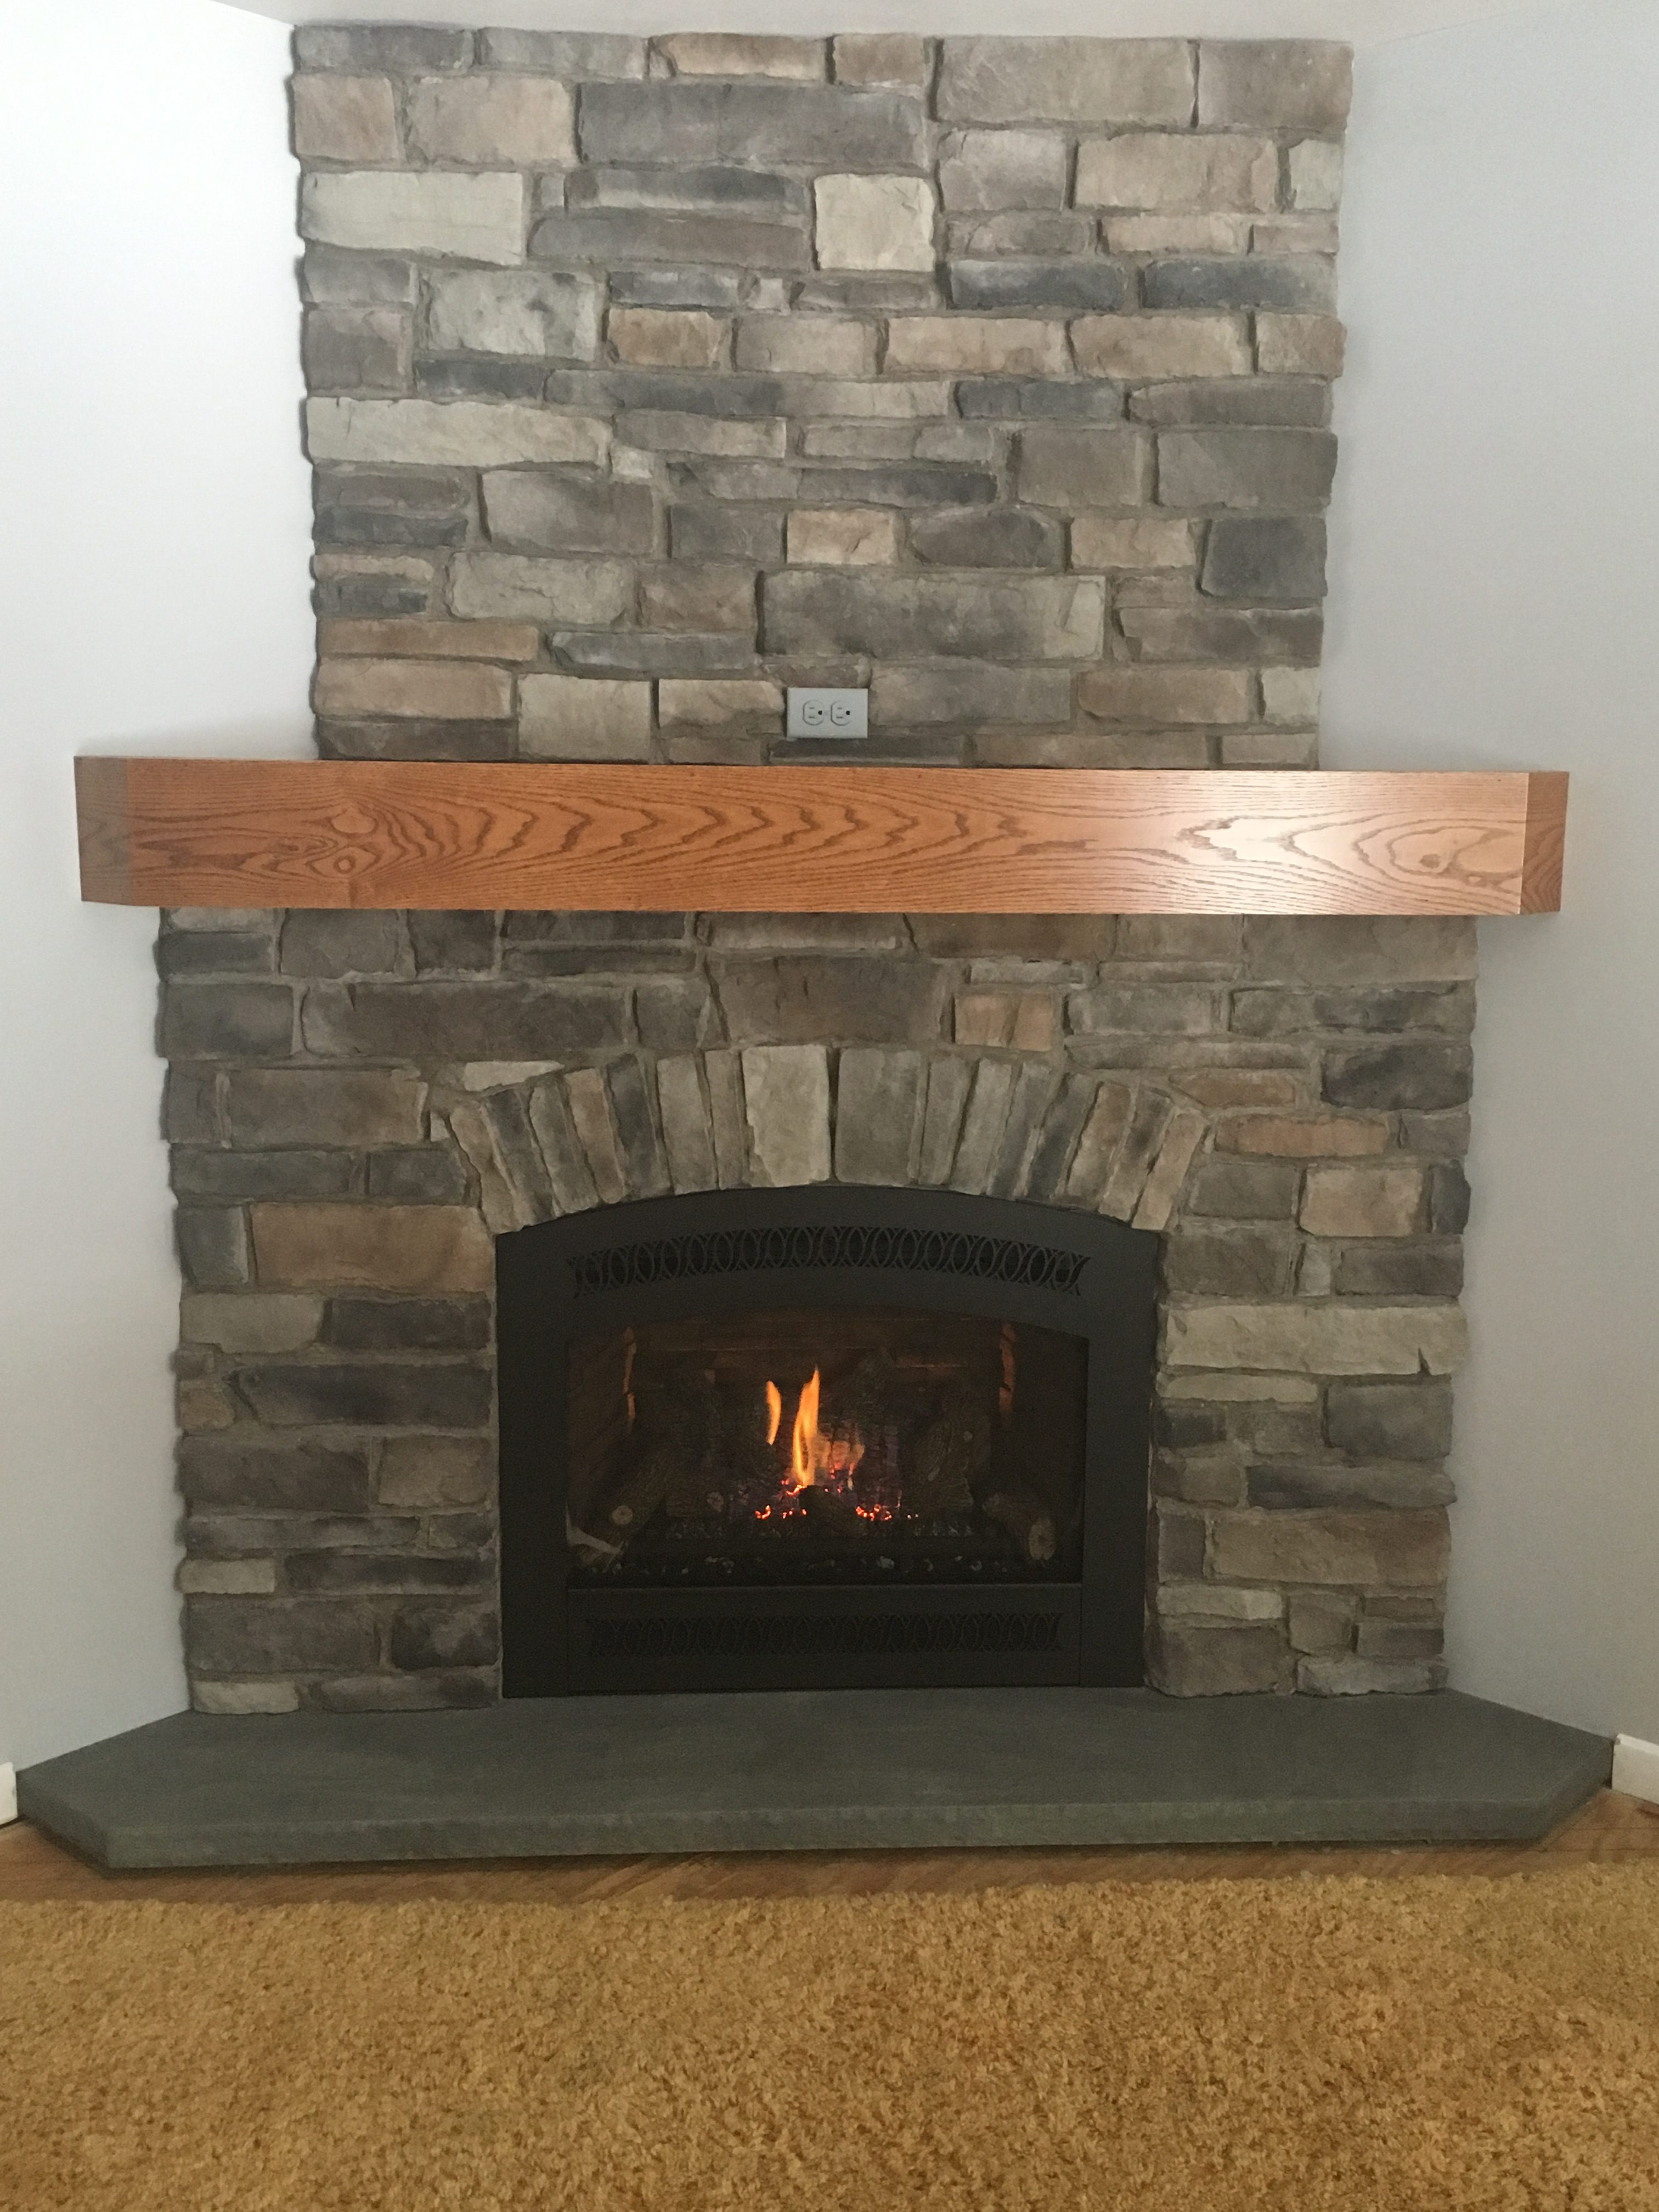 Image of a traditional 564 HighOutput gas fireplace by Fireplace X featuring rustic stonework facing and mantle.